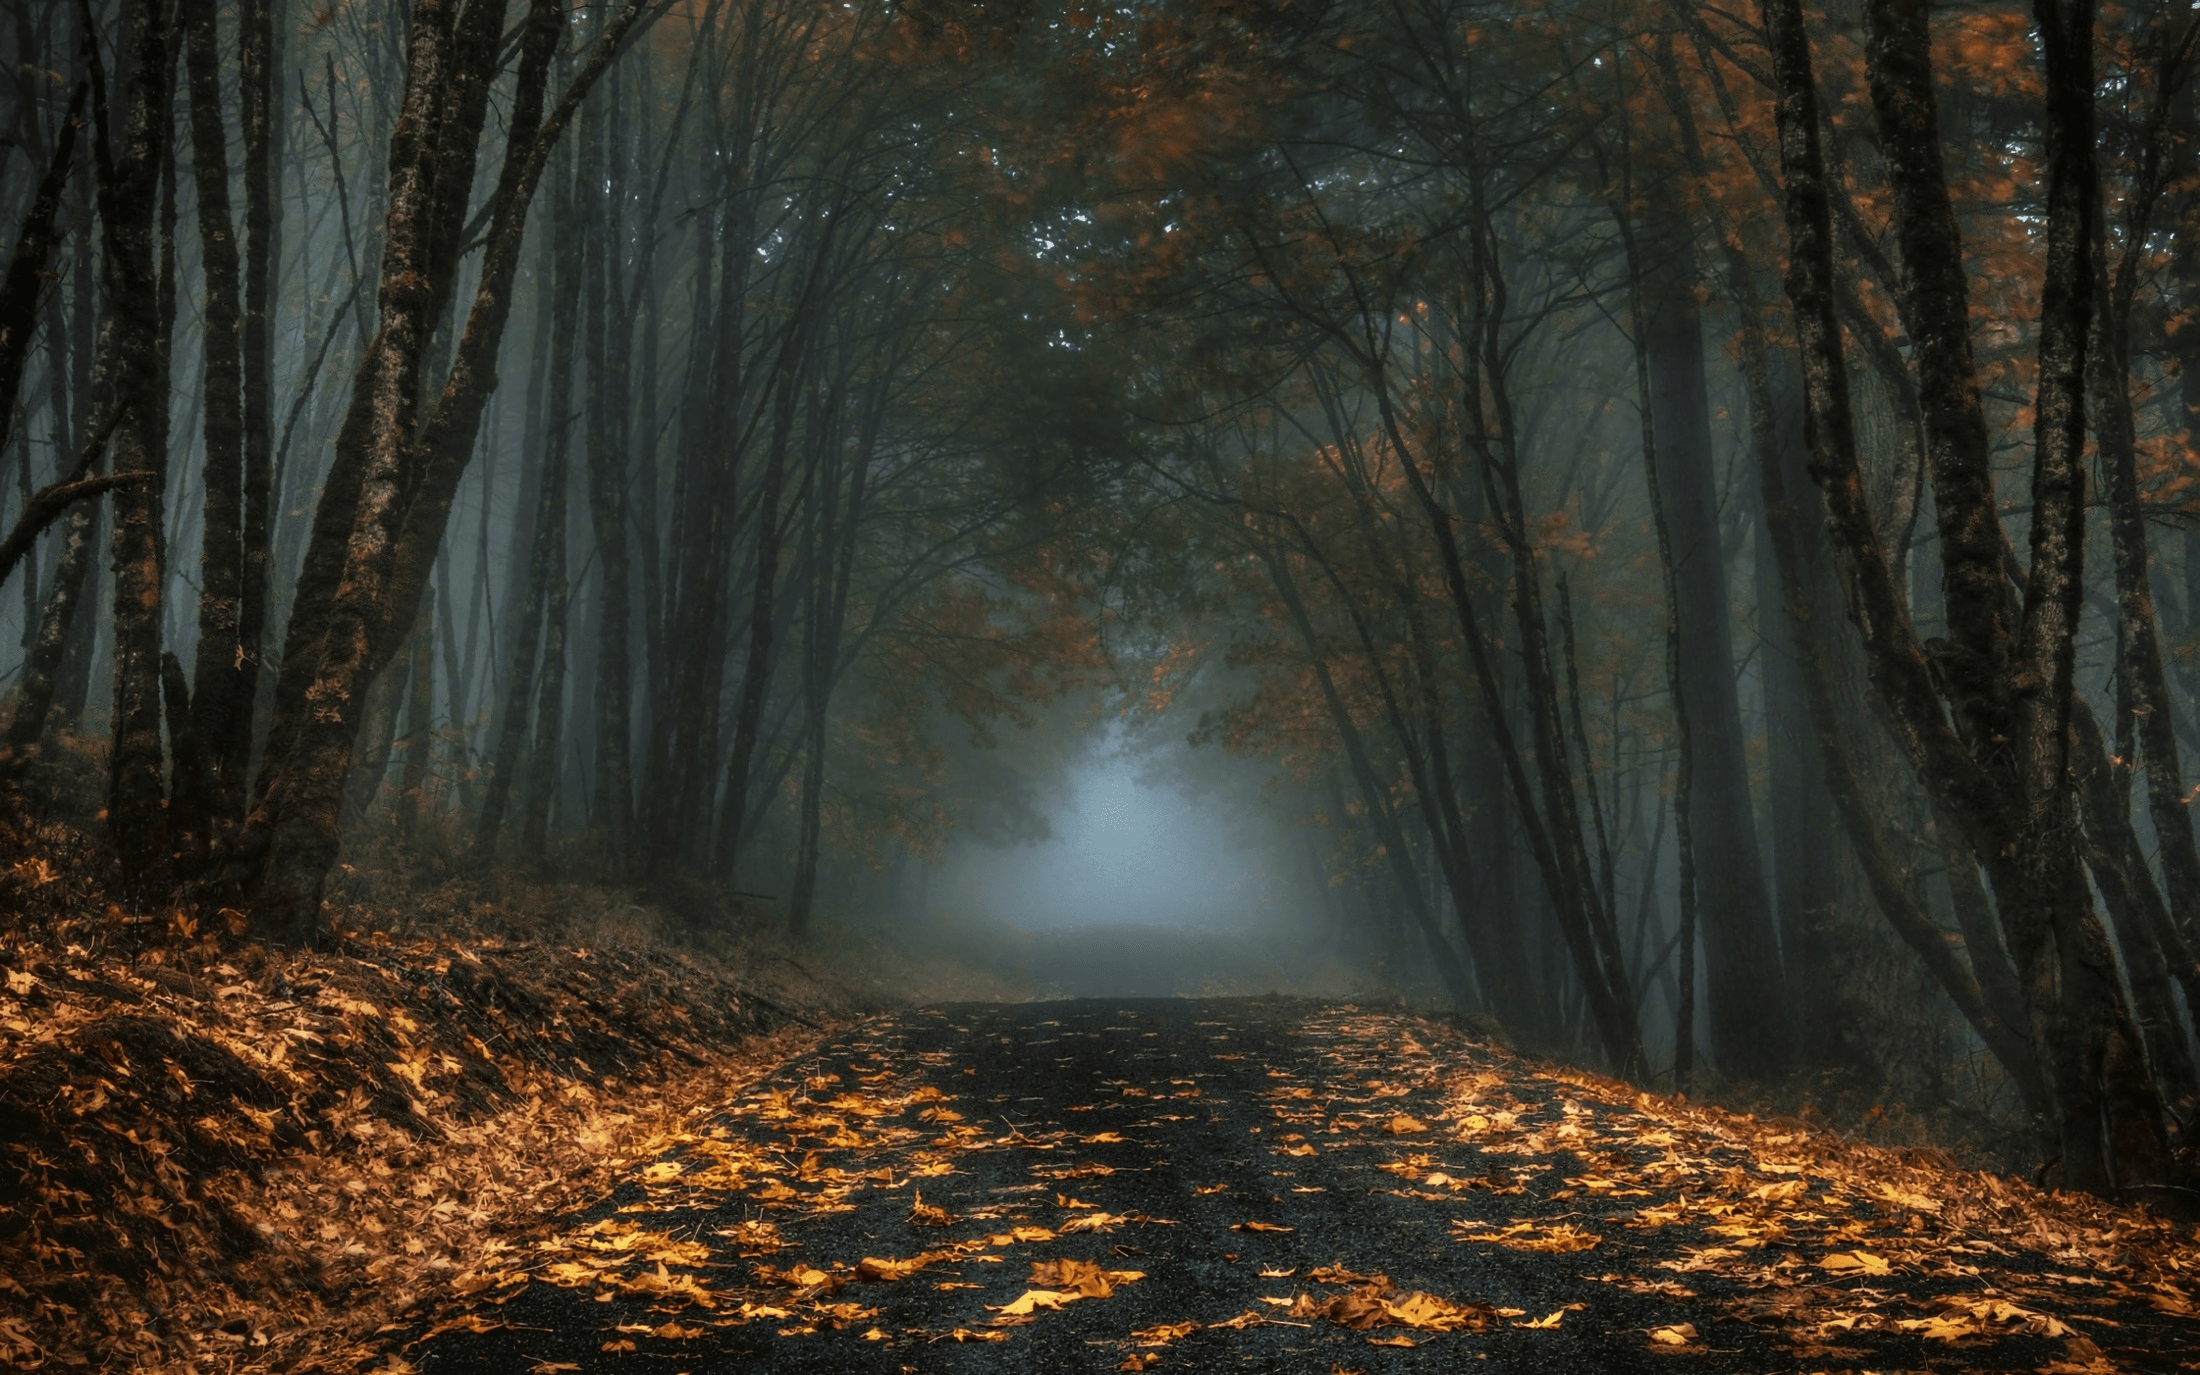 Fall Foliage Wallpaper For Iphone Foggy Autumn Forest Road Hd Wallpaper Background Image